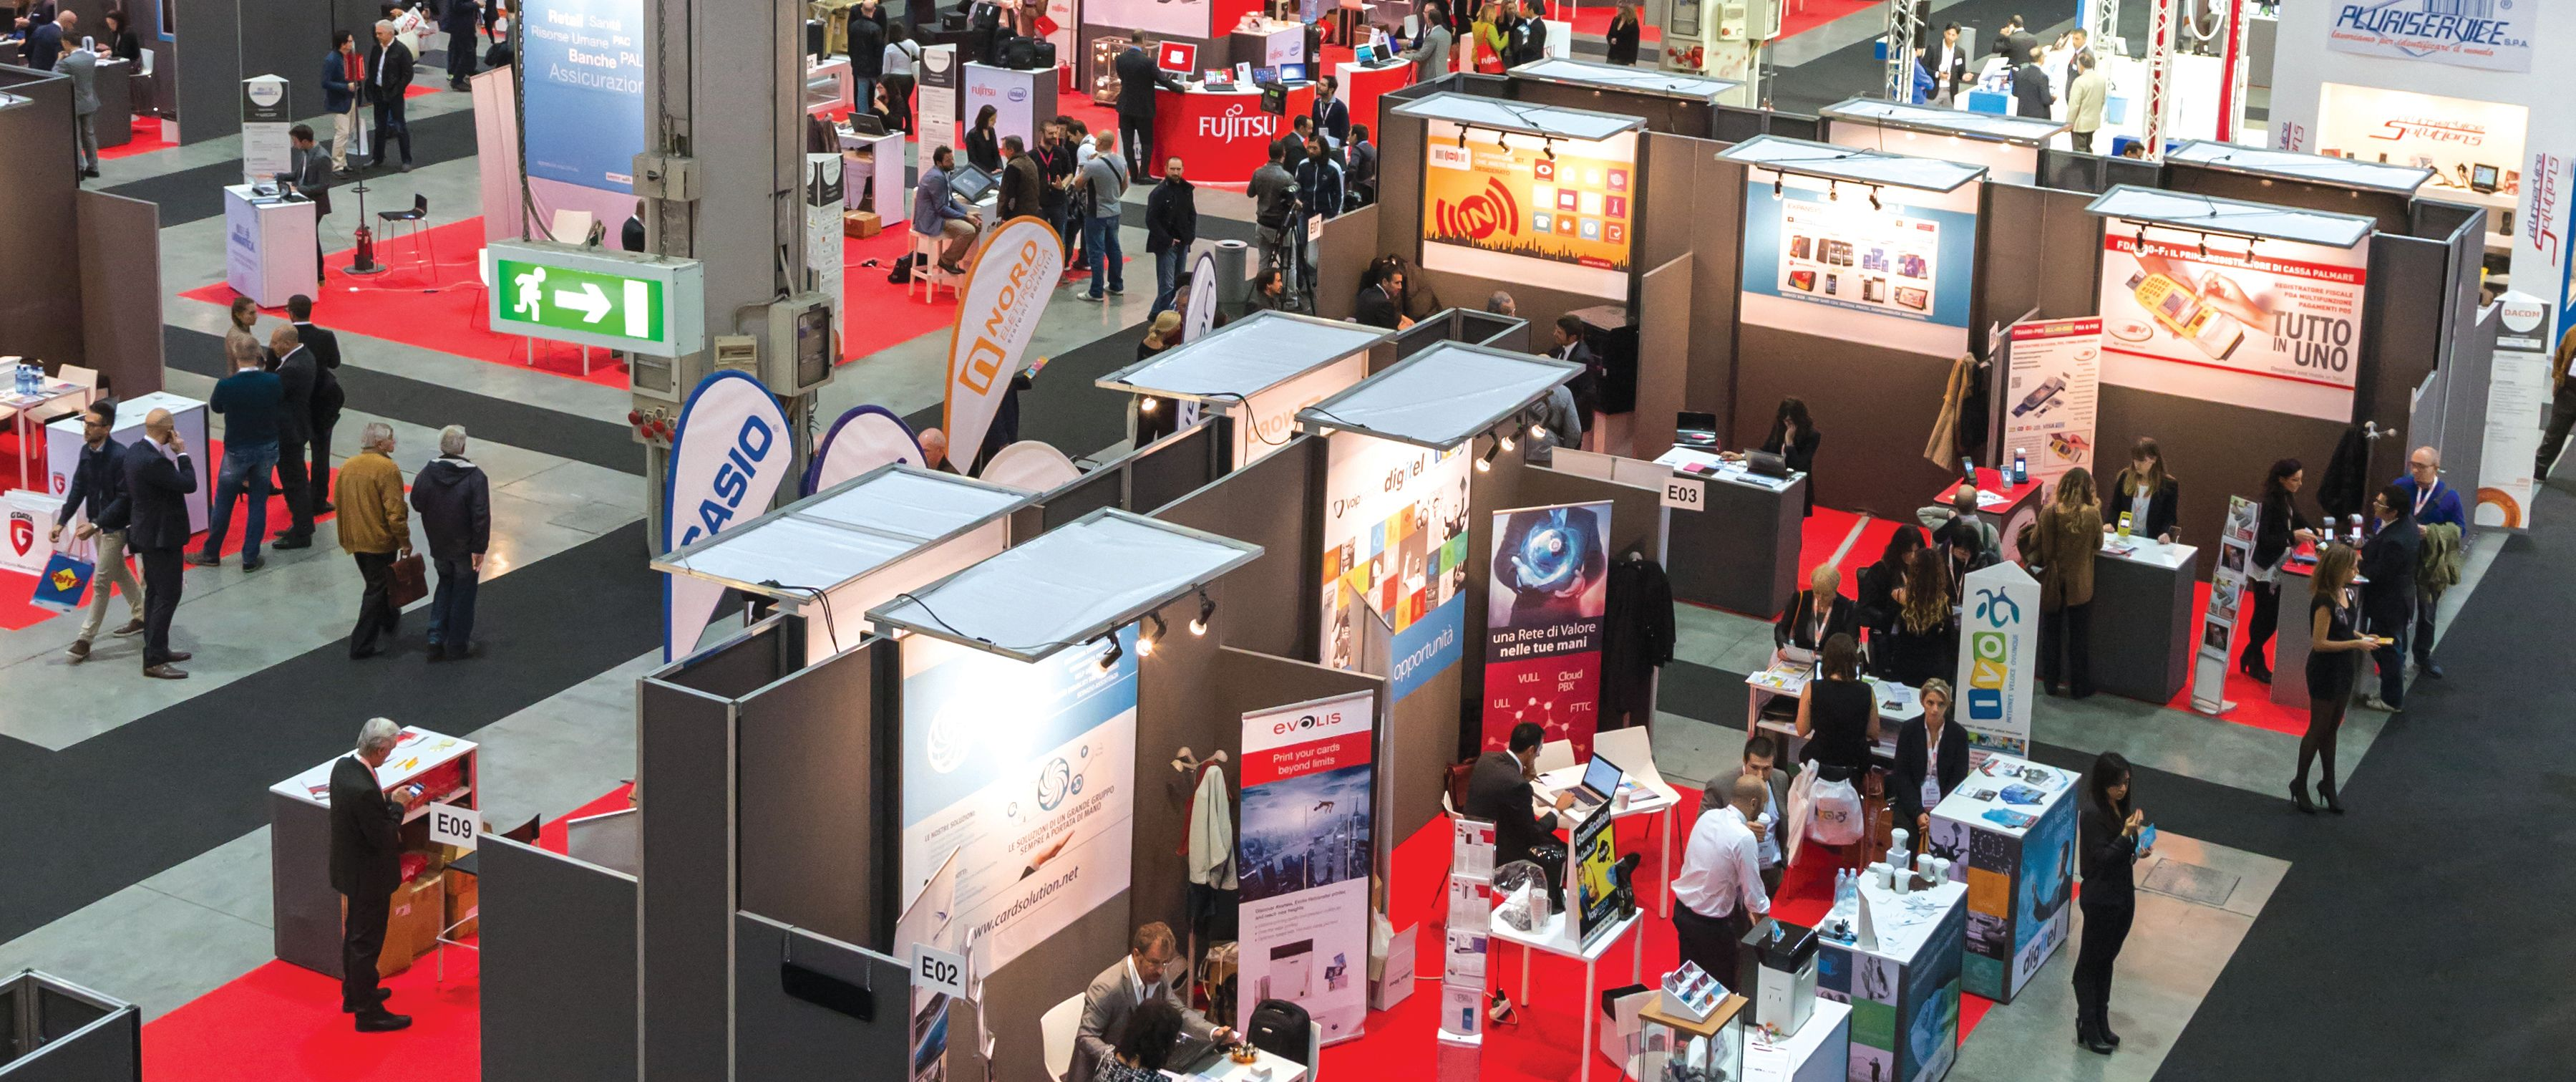 Making a Strategic Plan for a Trade Show